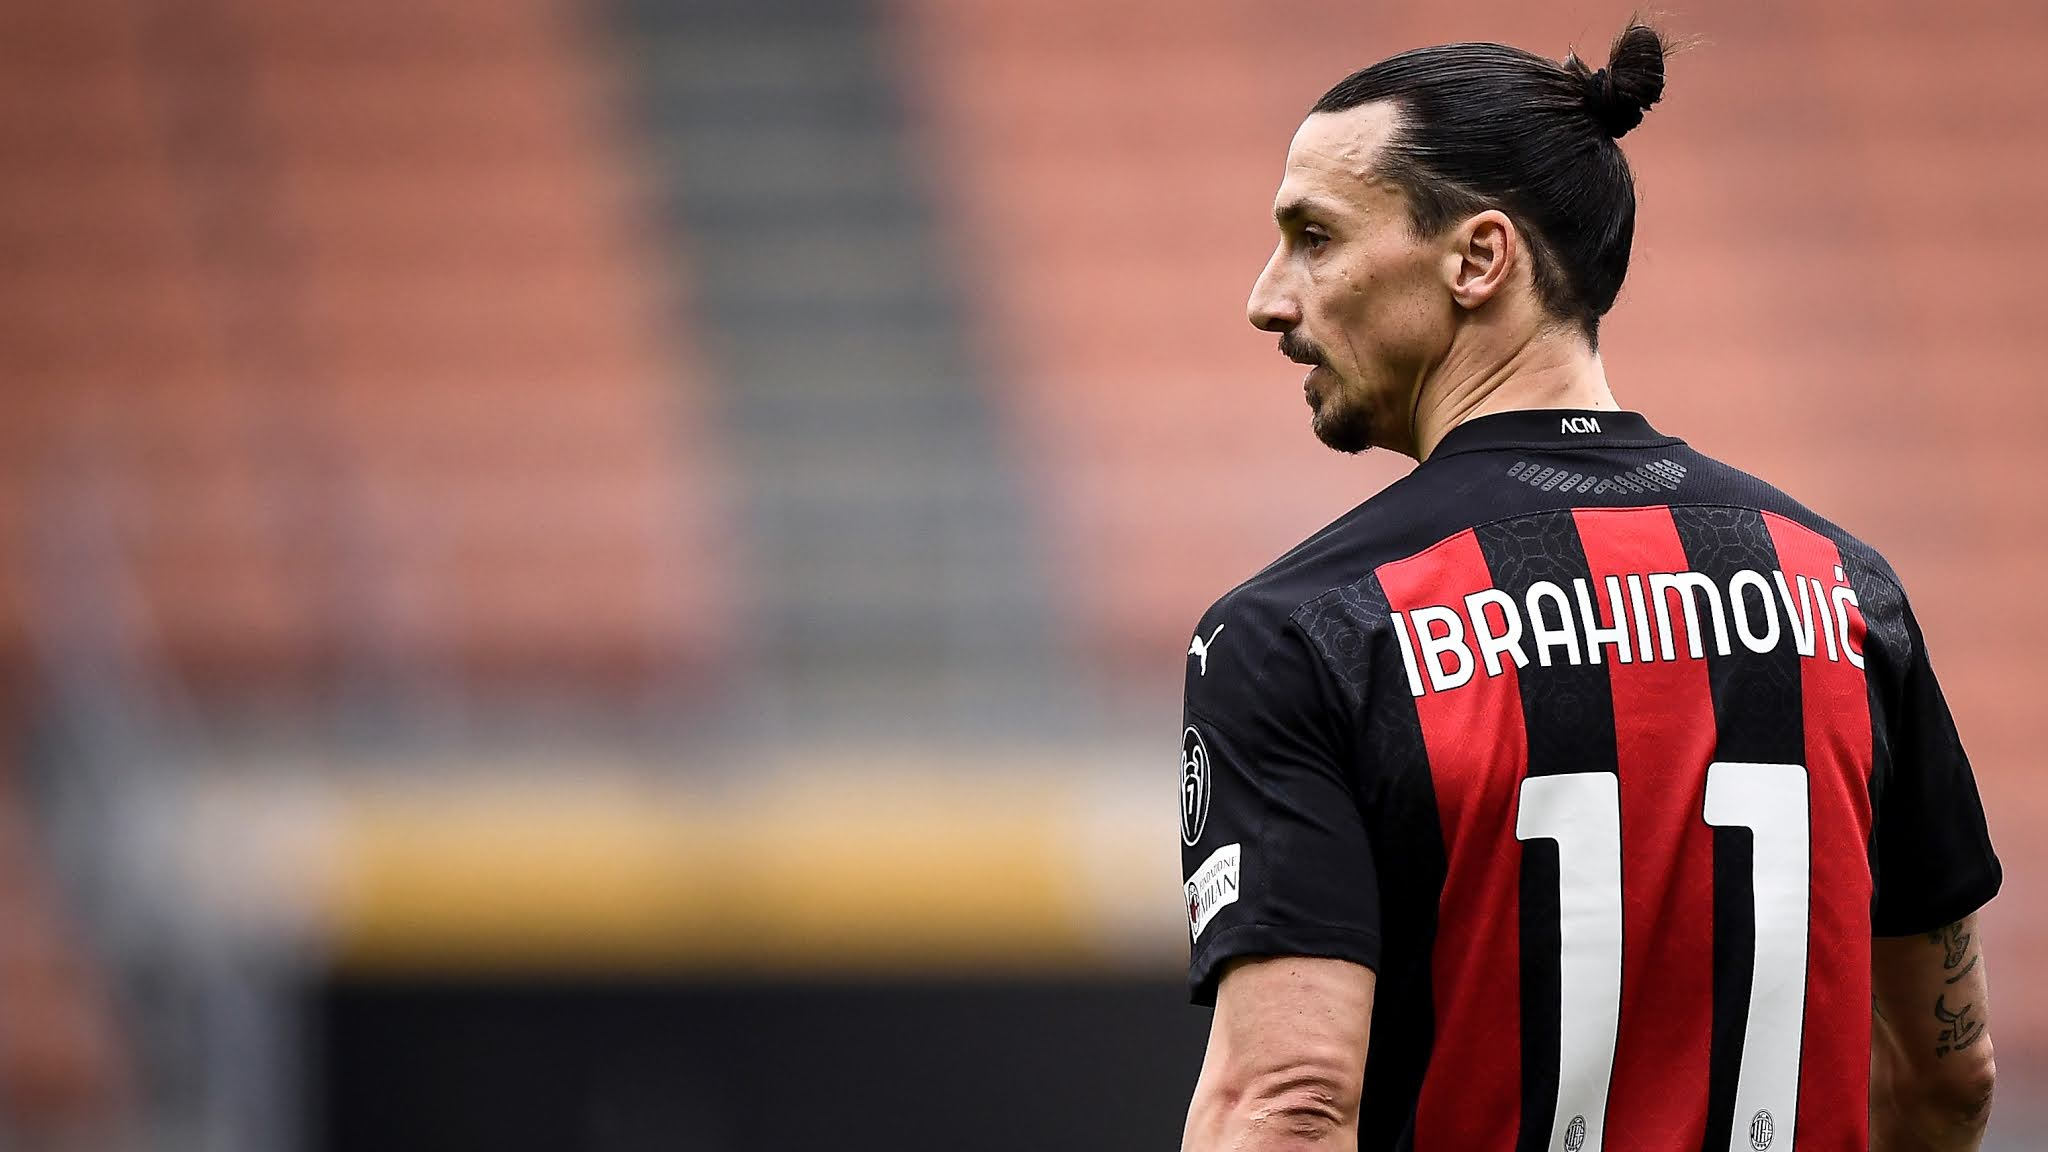 Zlatan Ibrahimovic's AC Milan will look to close the deficit on cross-town rivals Inter Milan